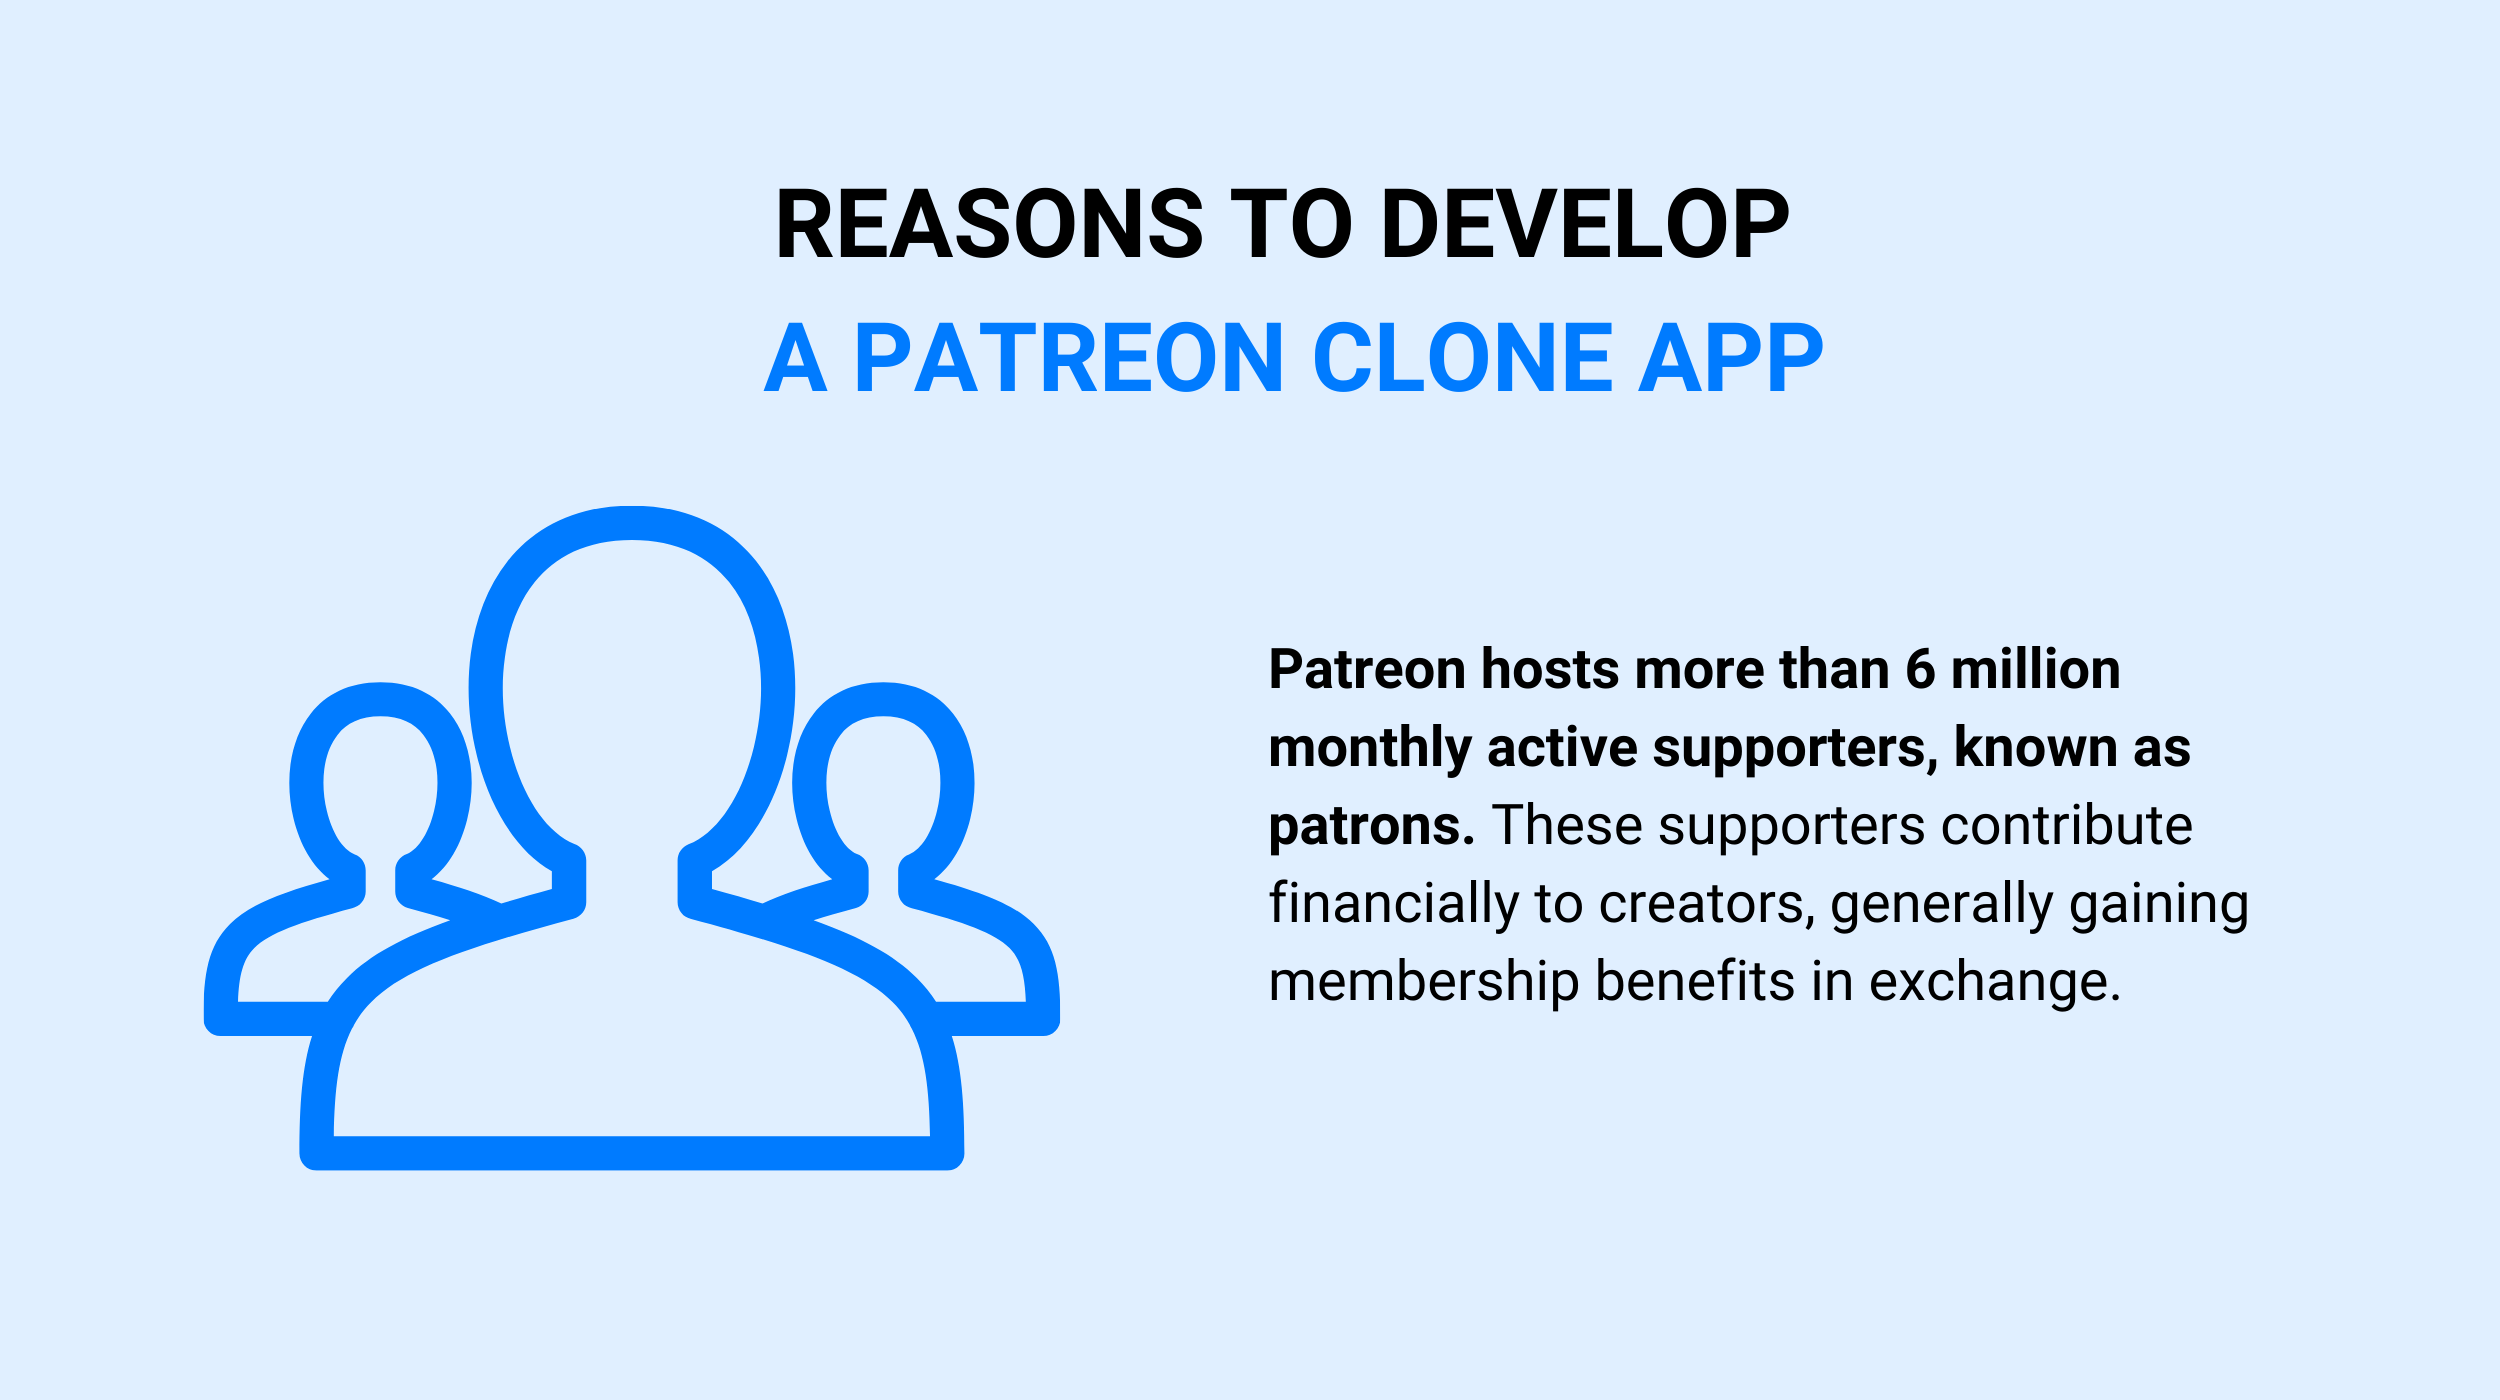 Reasons to Develop a Patreon Clone App